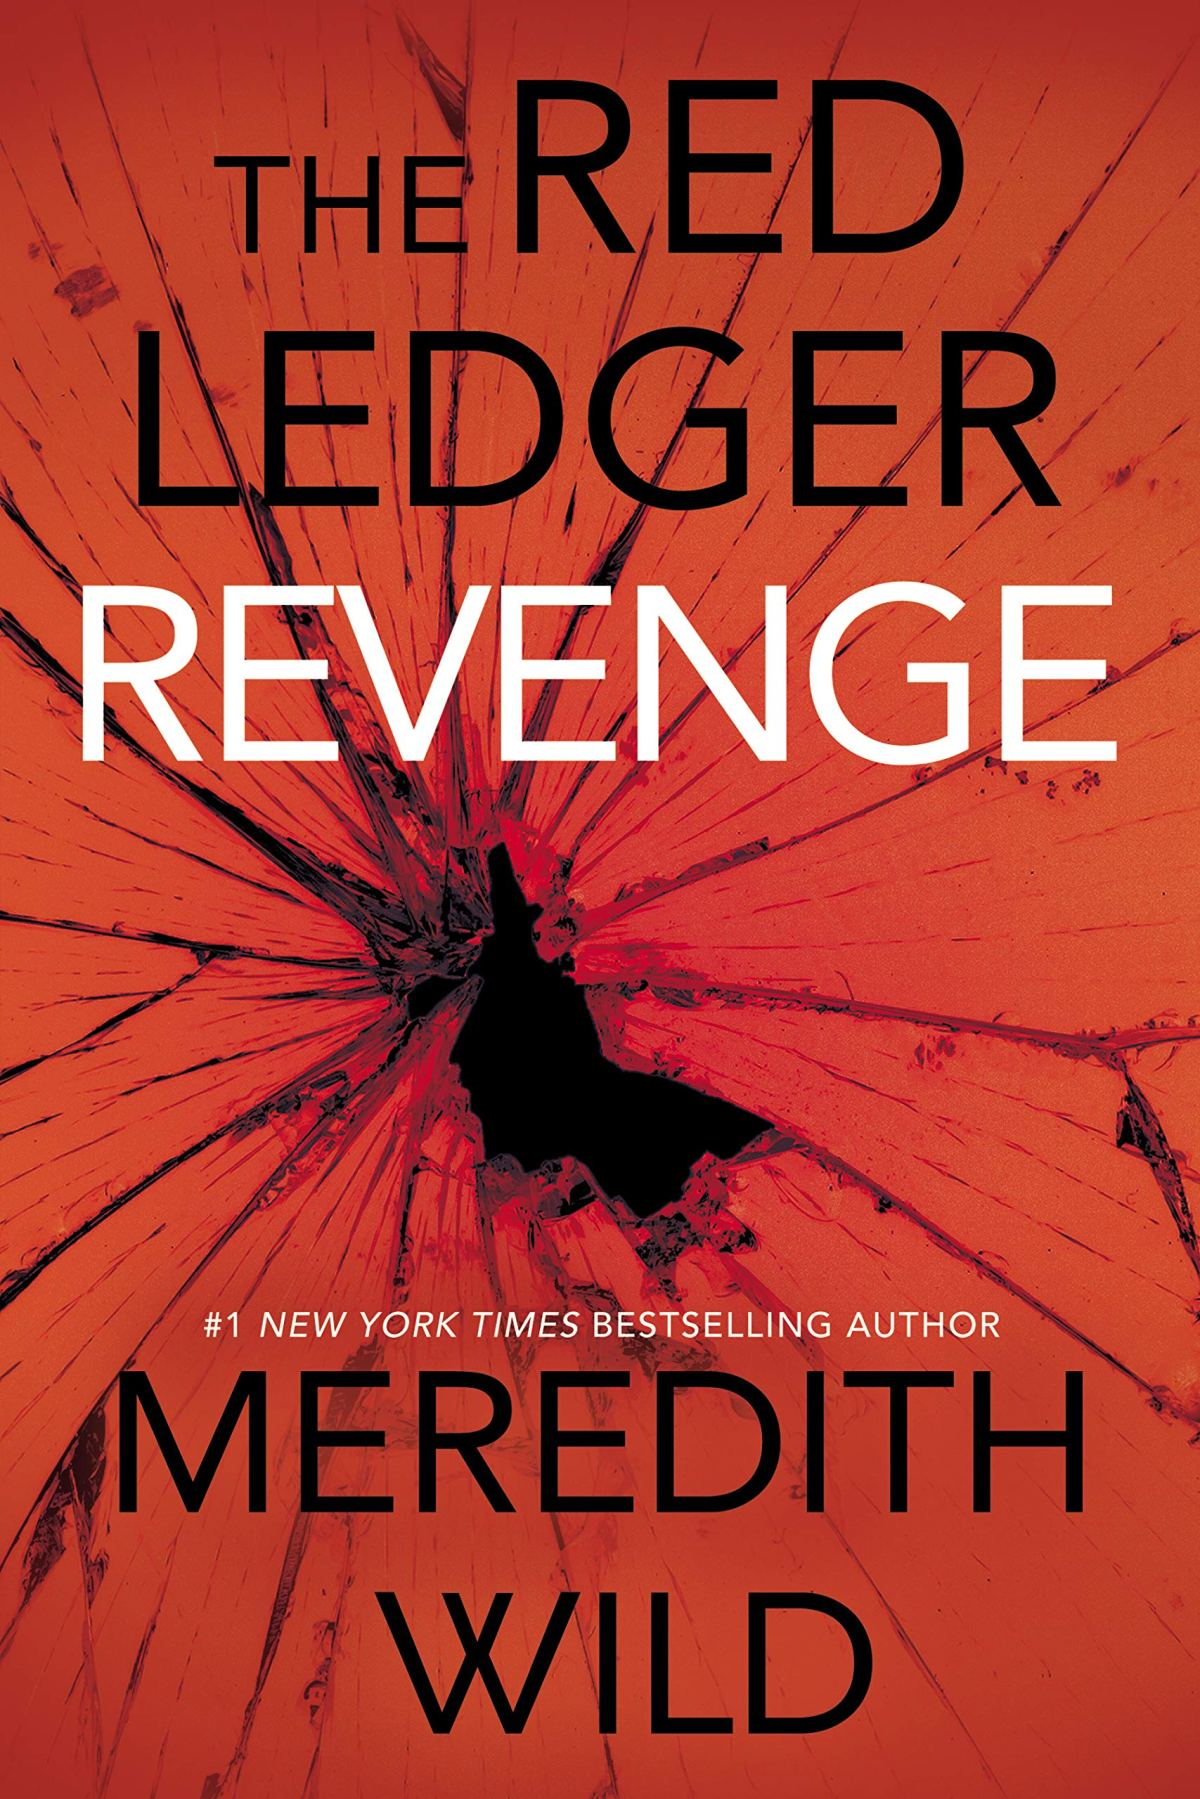 Review: Revenge (The Red Ledger Vol. 3) by MeredithWild